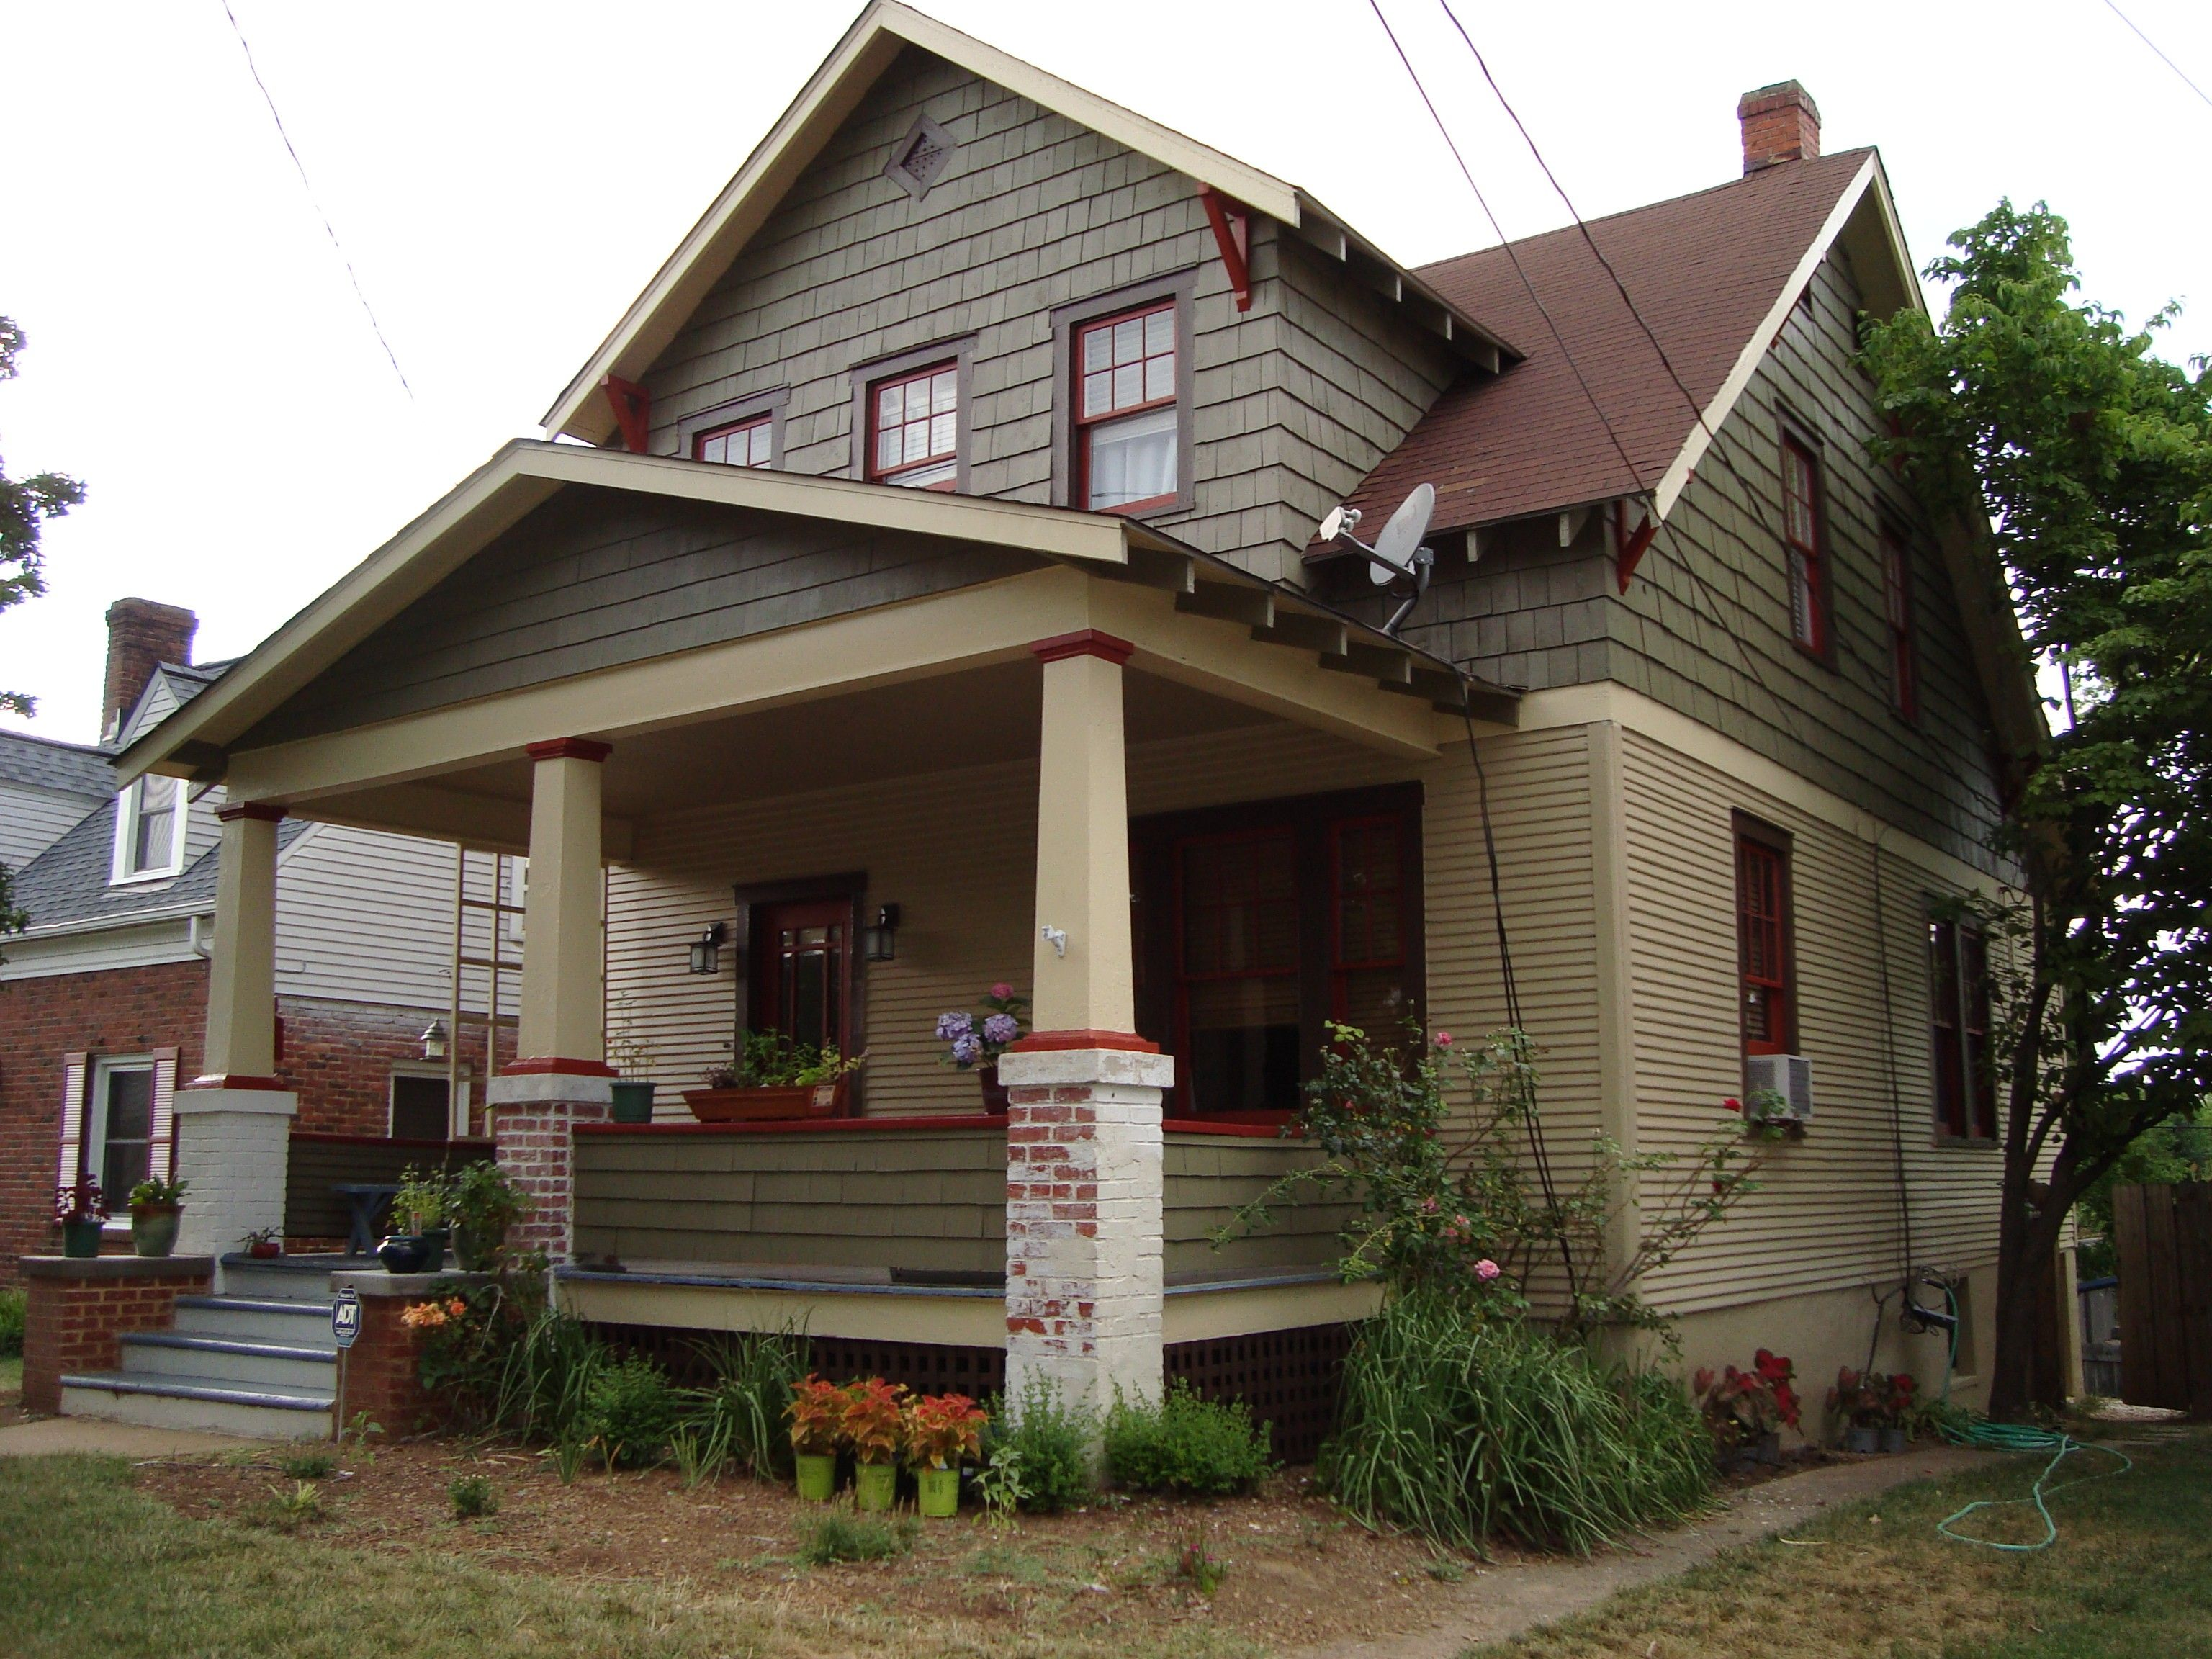 Exterior paint ideas brown - Bungalow Home Color Colors For An Historic Virginia Bungalow Submit An Entry House